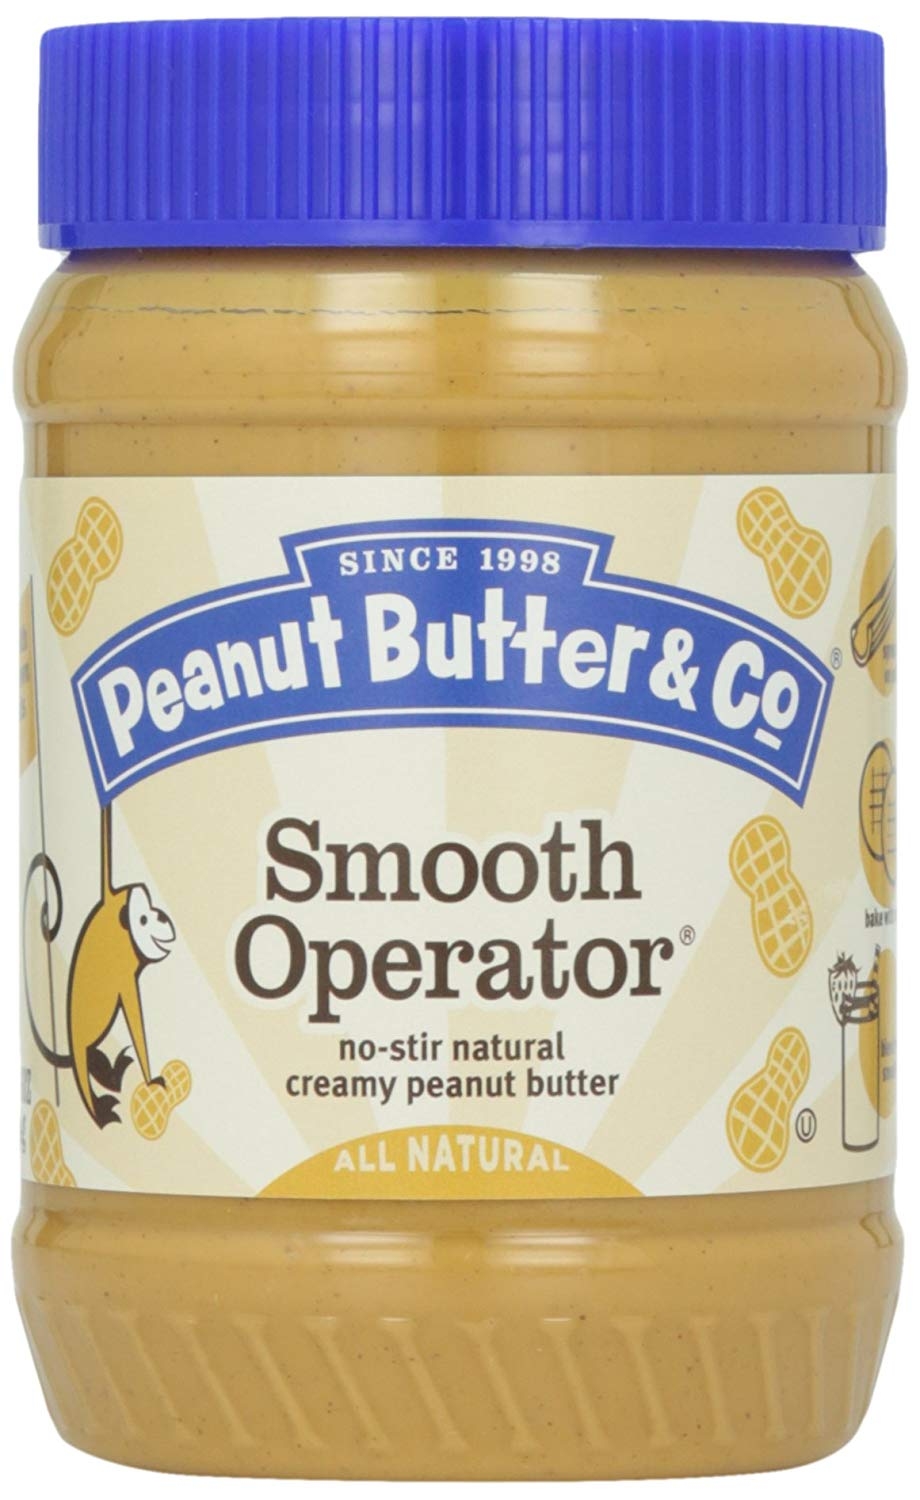 Peanut Butter & Co. Smooth Operator, 16 oz. (Case of 6)